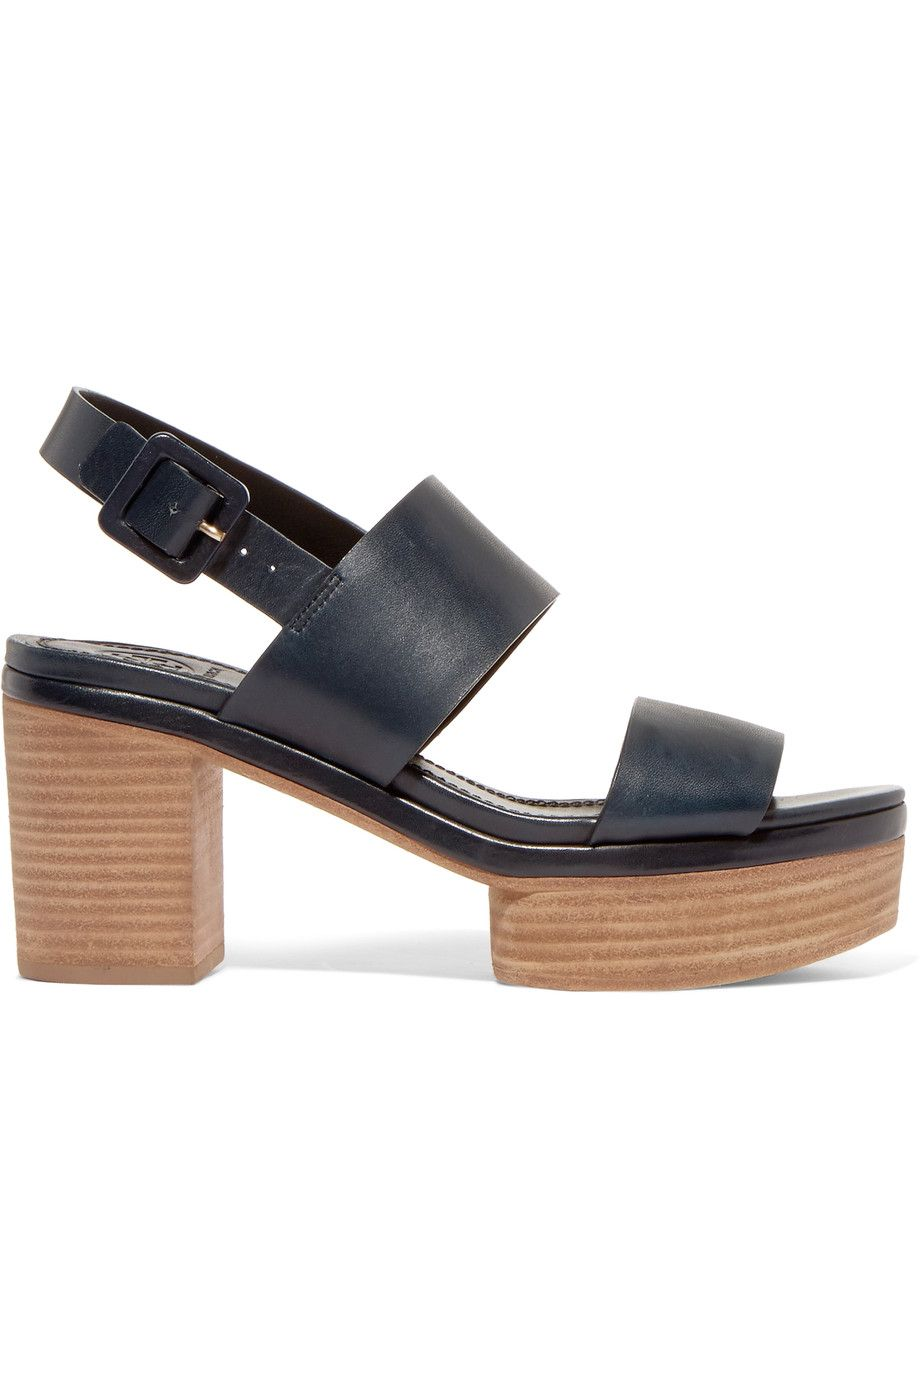 Shop on-sale Tory Burch Solana platform sandals . Browse other discount  designer Sandals & more on The Most Fashionable Fashion Outlet, THE OUTNET.